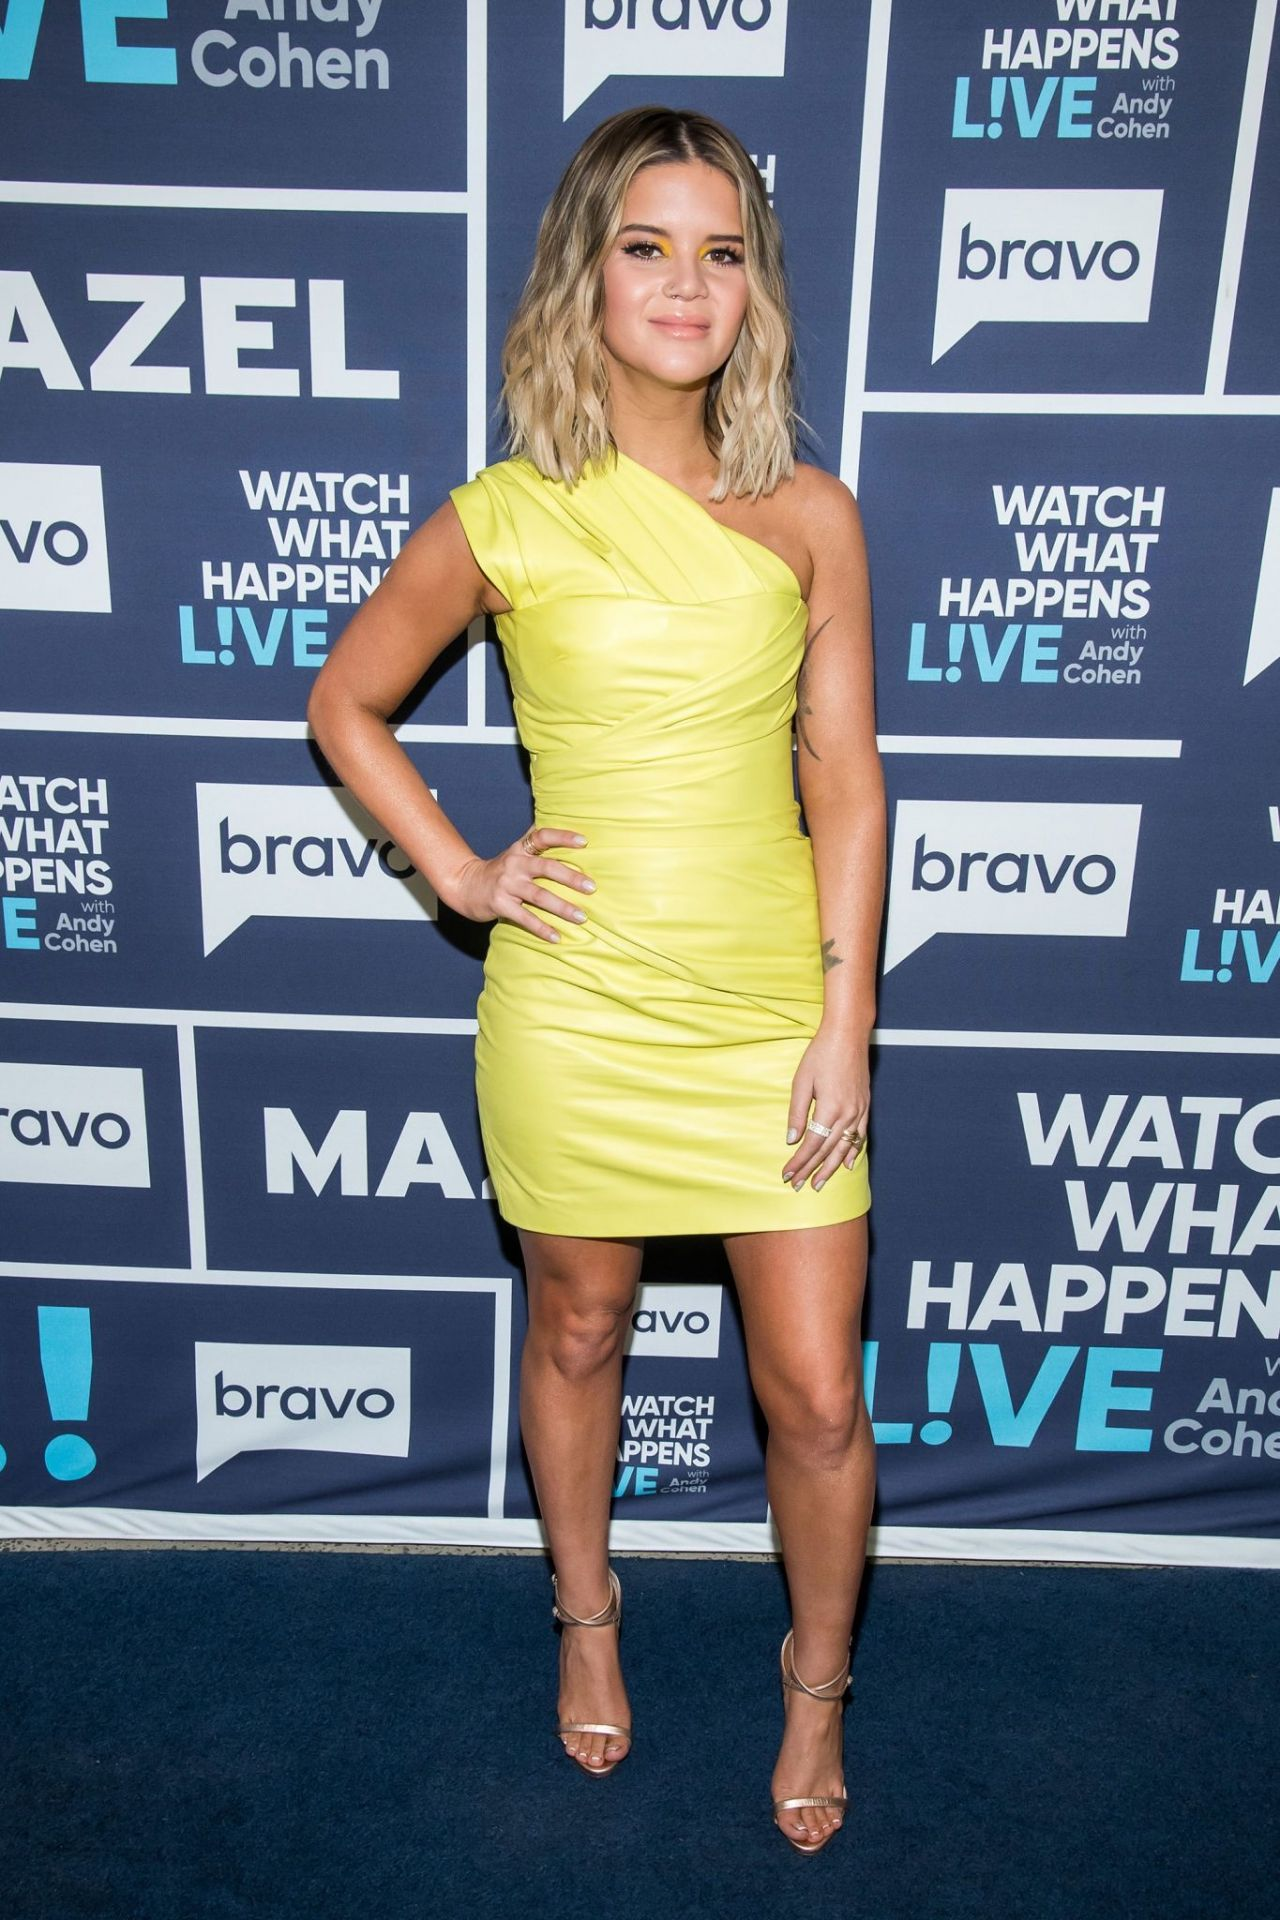 Maren Morris stunning and super sexy on Watch What Happens Live in tight yellow dress